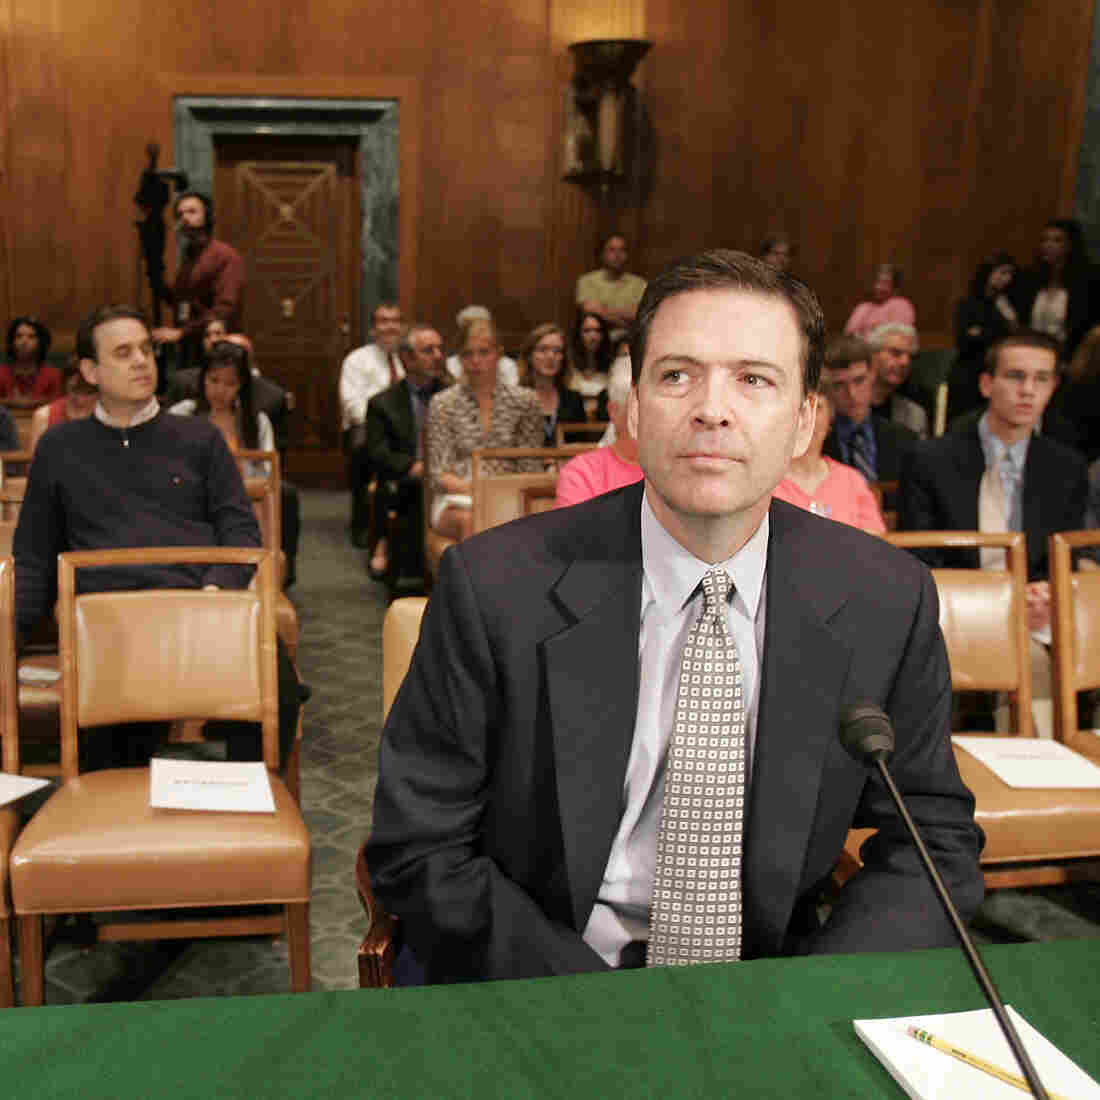 Senate Confirms James Comey As Next FBI Director